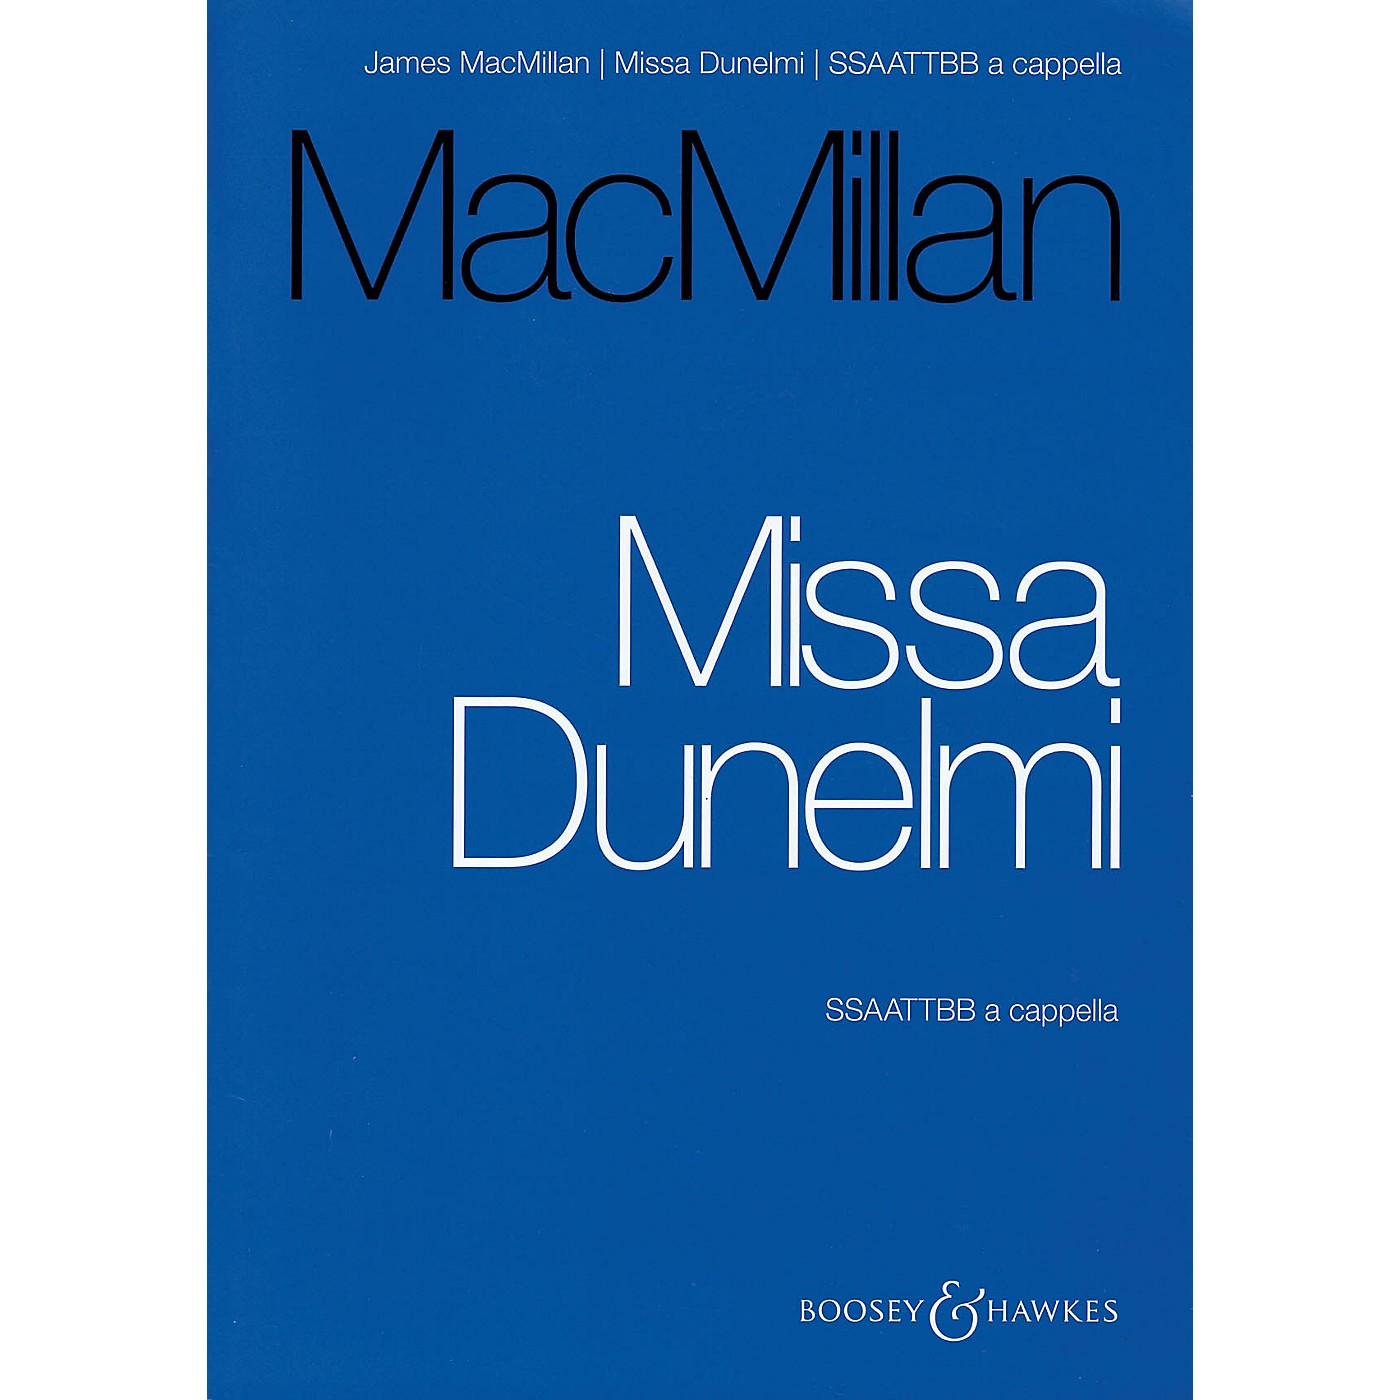 Boosey and Hawkes Missa Dunelmi (SSAATTBB a cappella Vocal Score) SSAATTBB composed by James MacMillan thumbnail